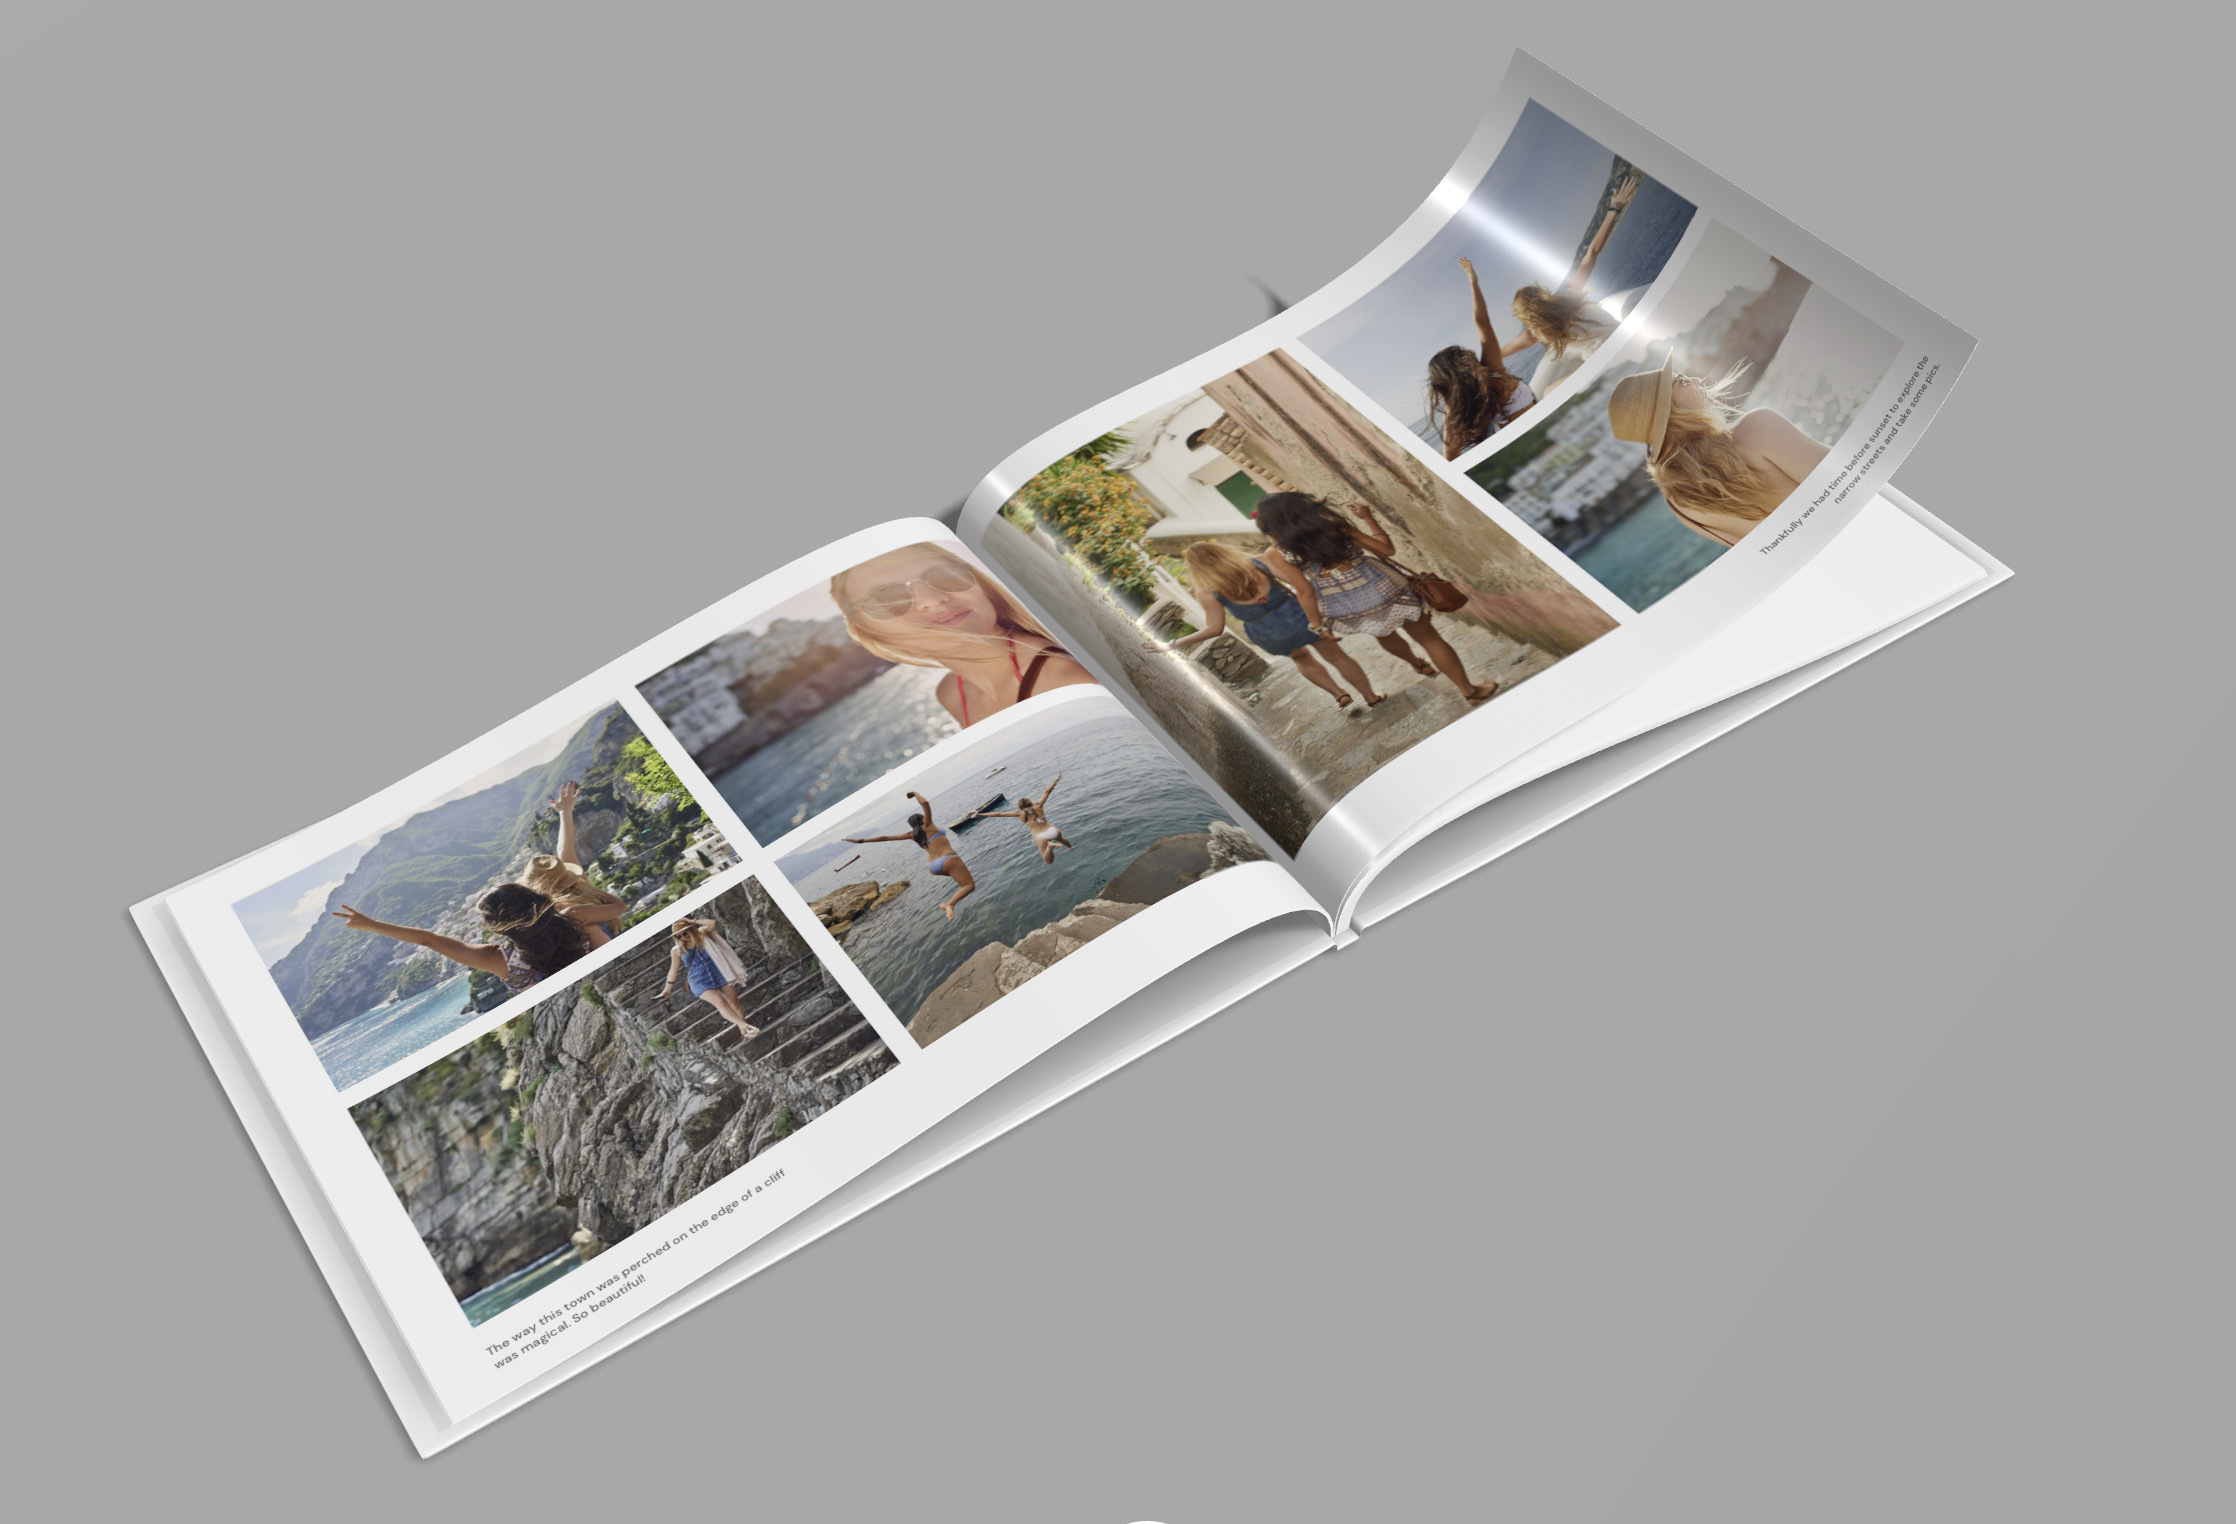 A three-dimentional rendering of a photobook opened in the middle on a grey background